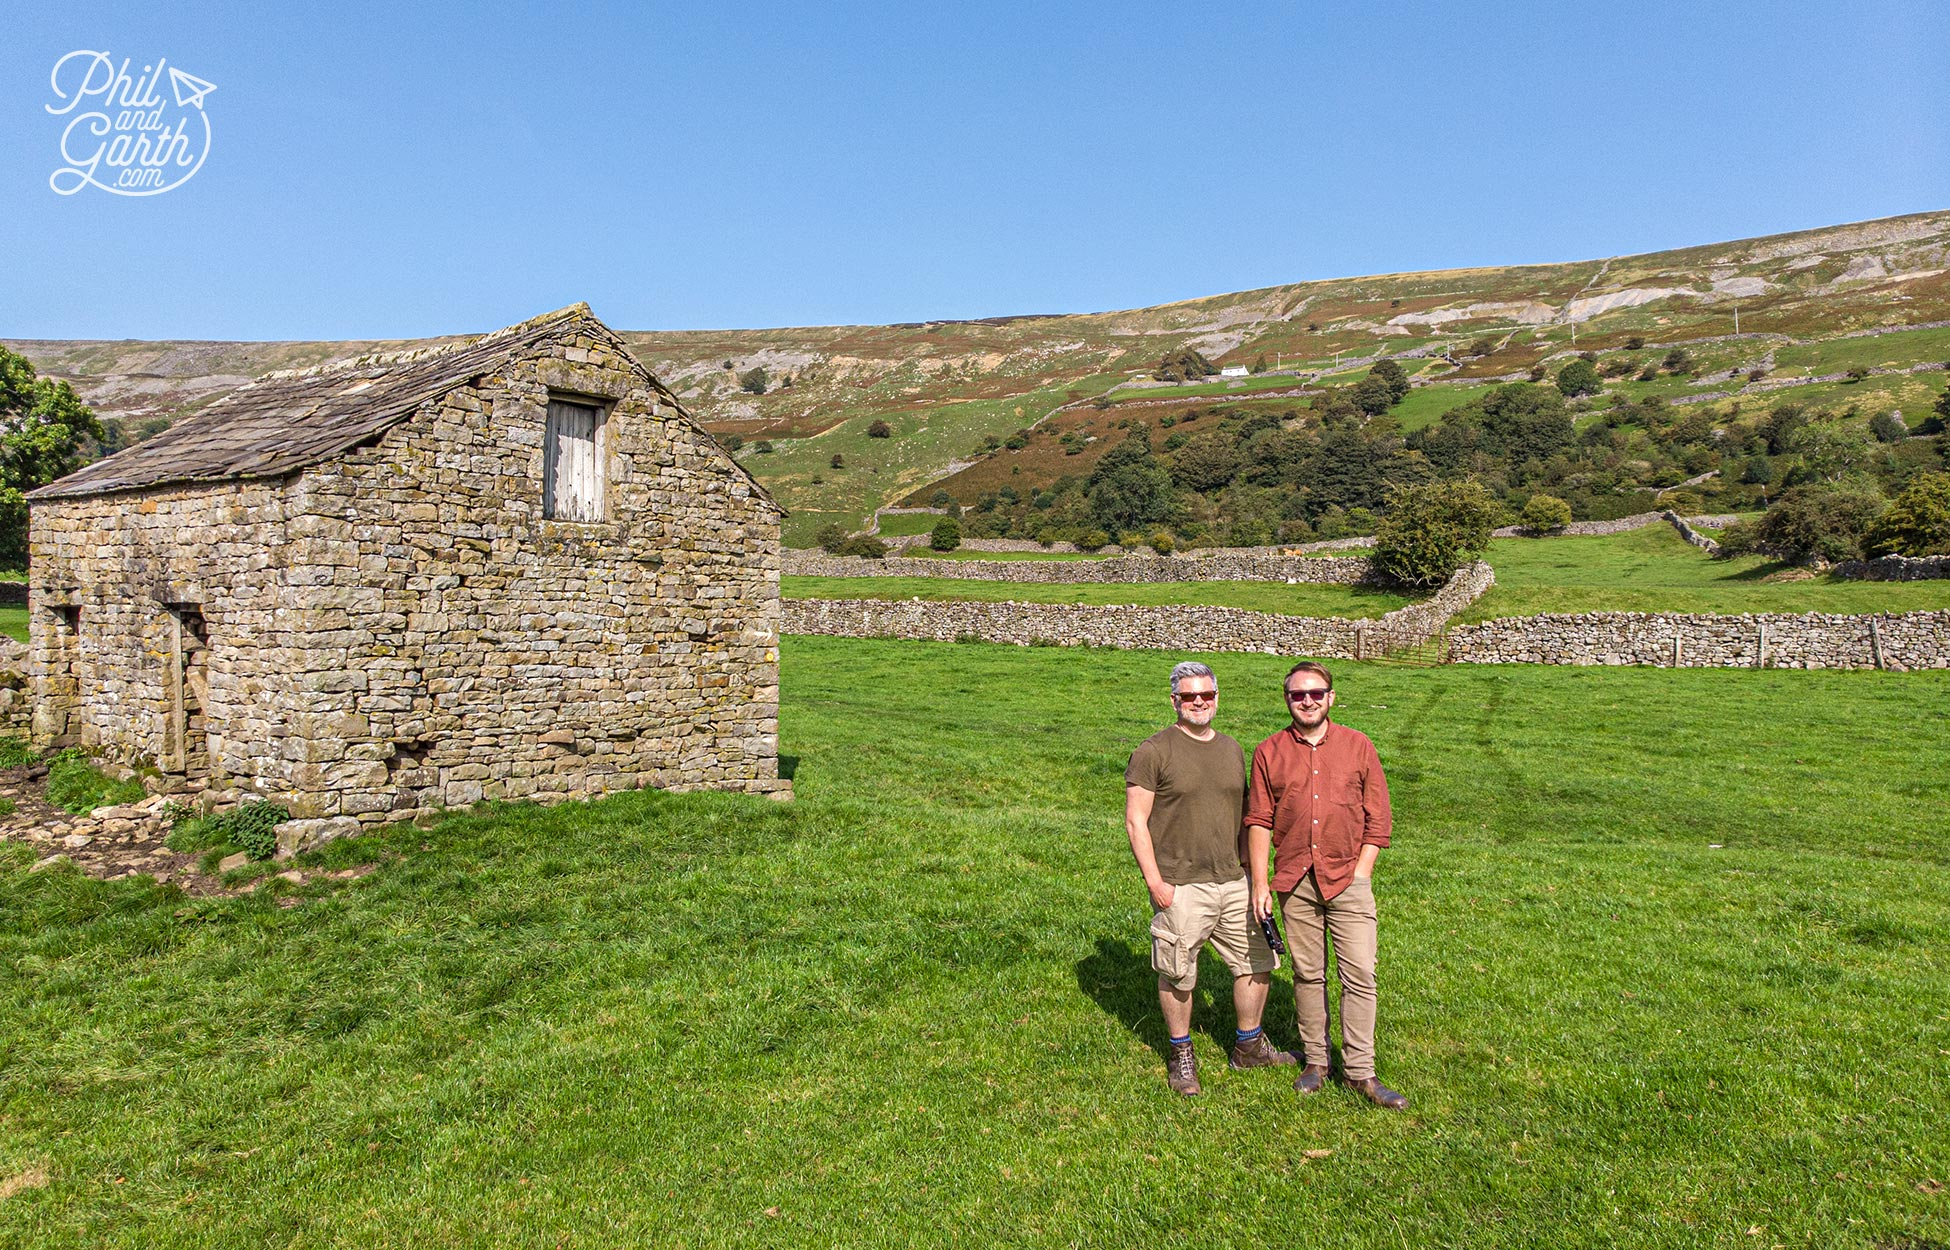 Phil and Garth in Reeth, Yorkshire Dales National Park